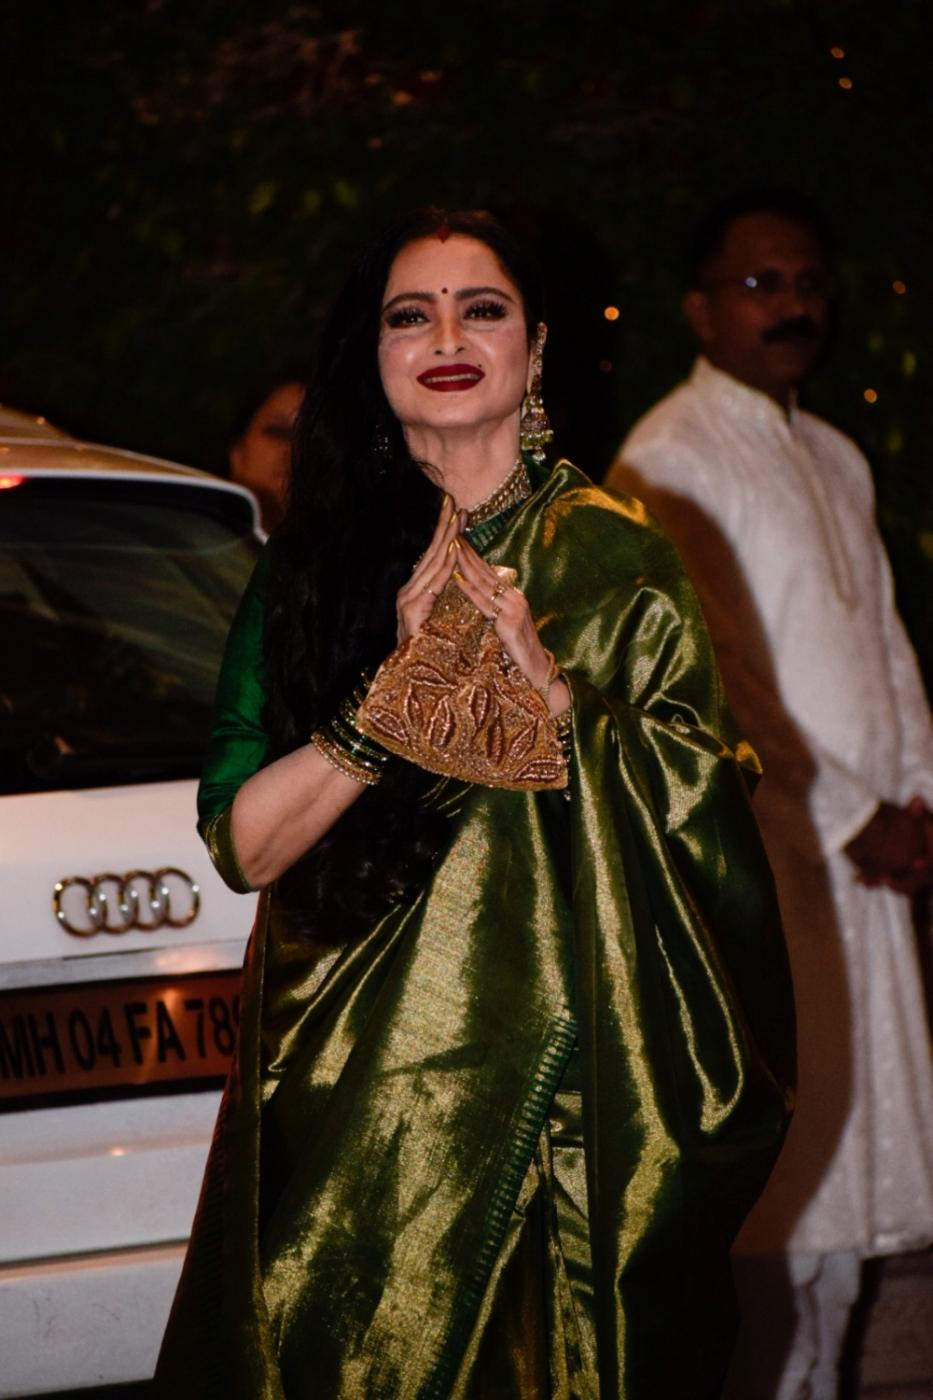 Mumbai: Actress Rekha arrives at Reliance Industries Chairman and MD Mukesh Ambani's residence to celebrate Ganesh Chaturthi in Mumbai on Sept 13, 2018. (Photo: IANS) by .